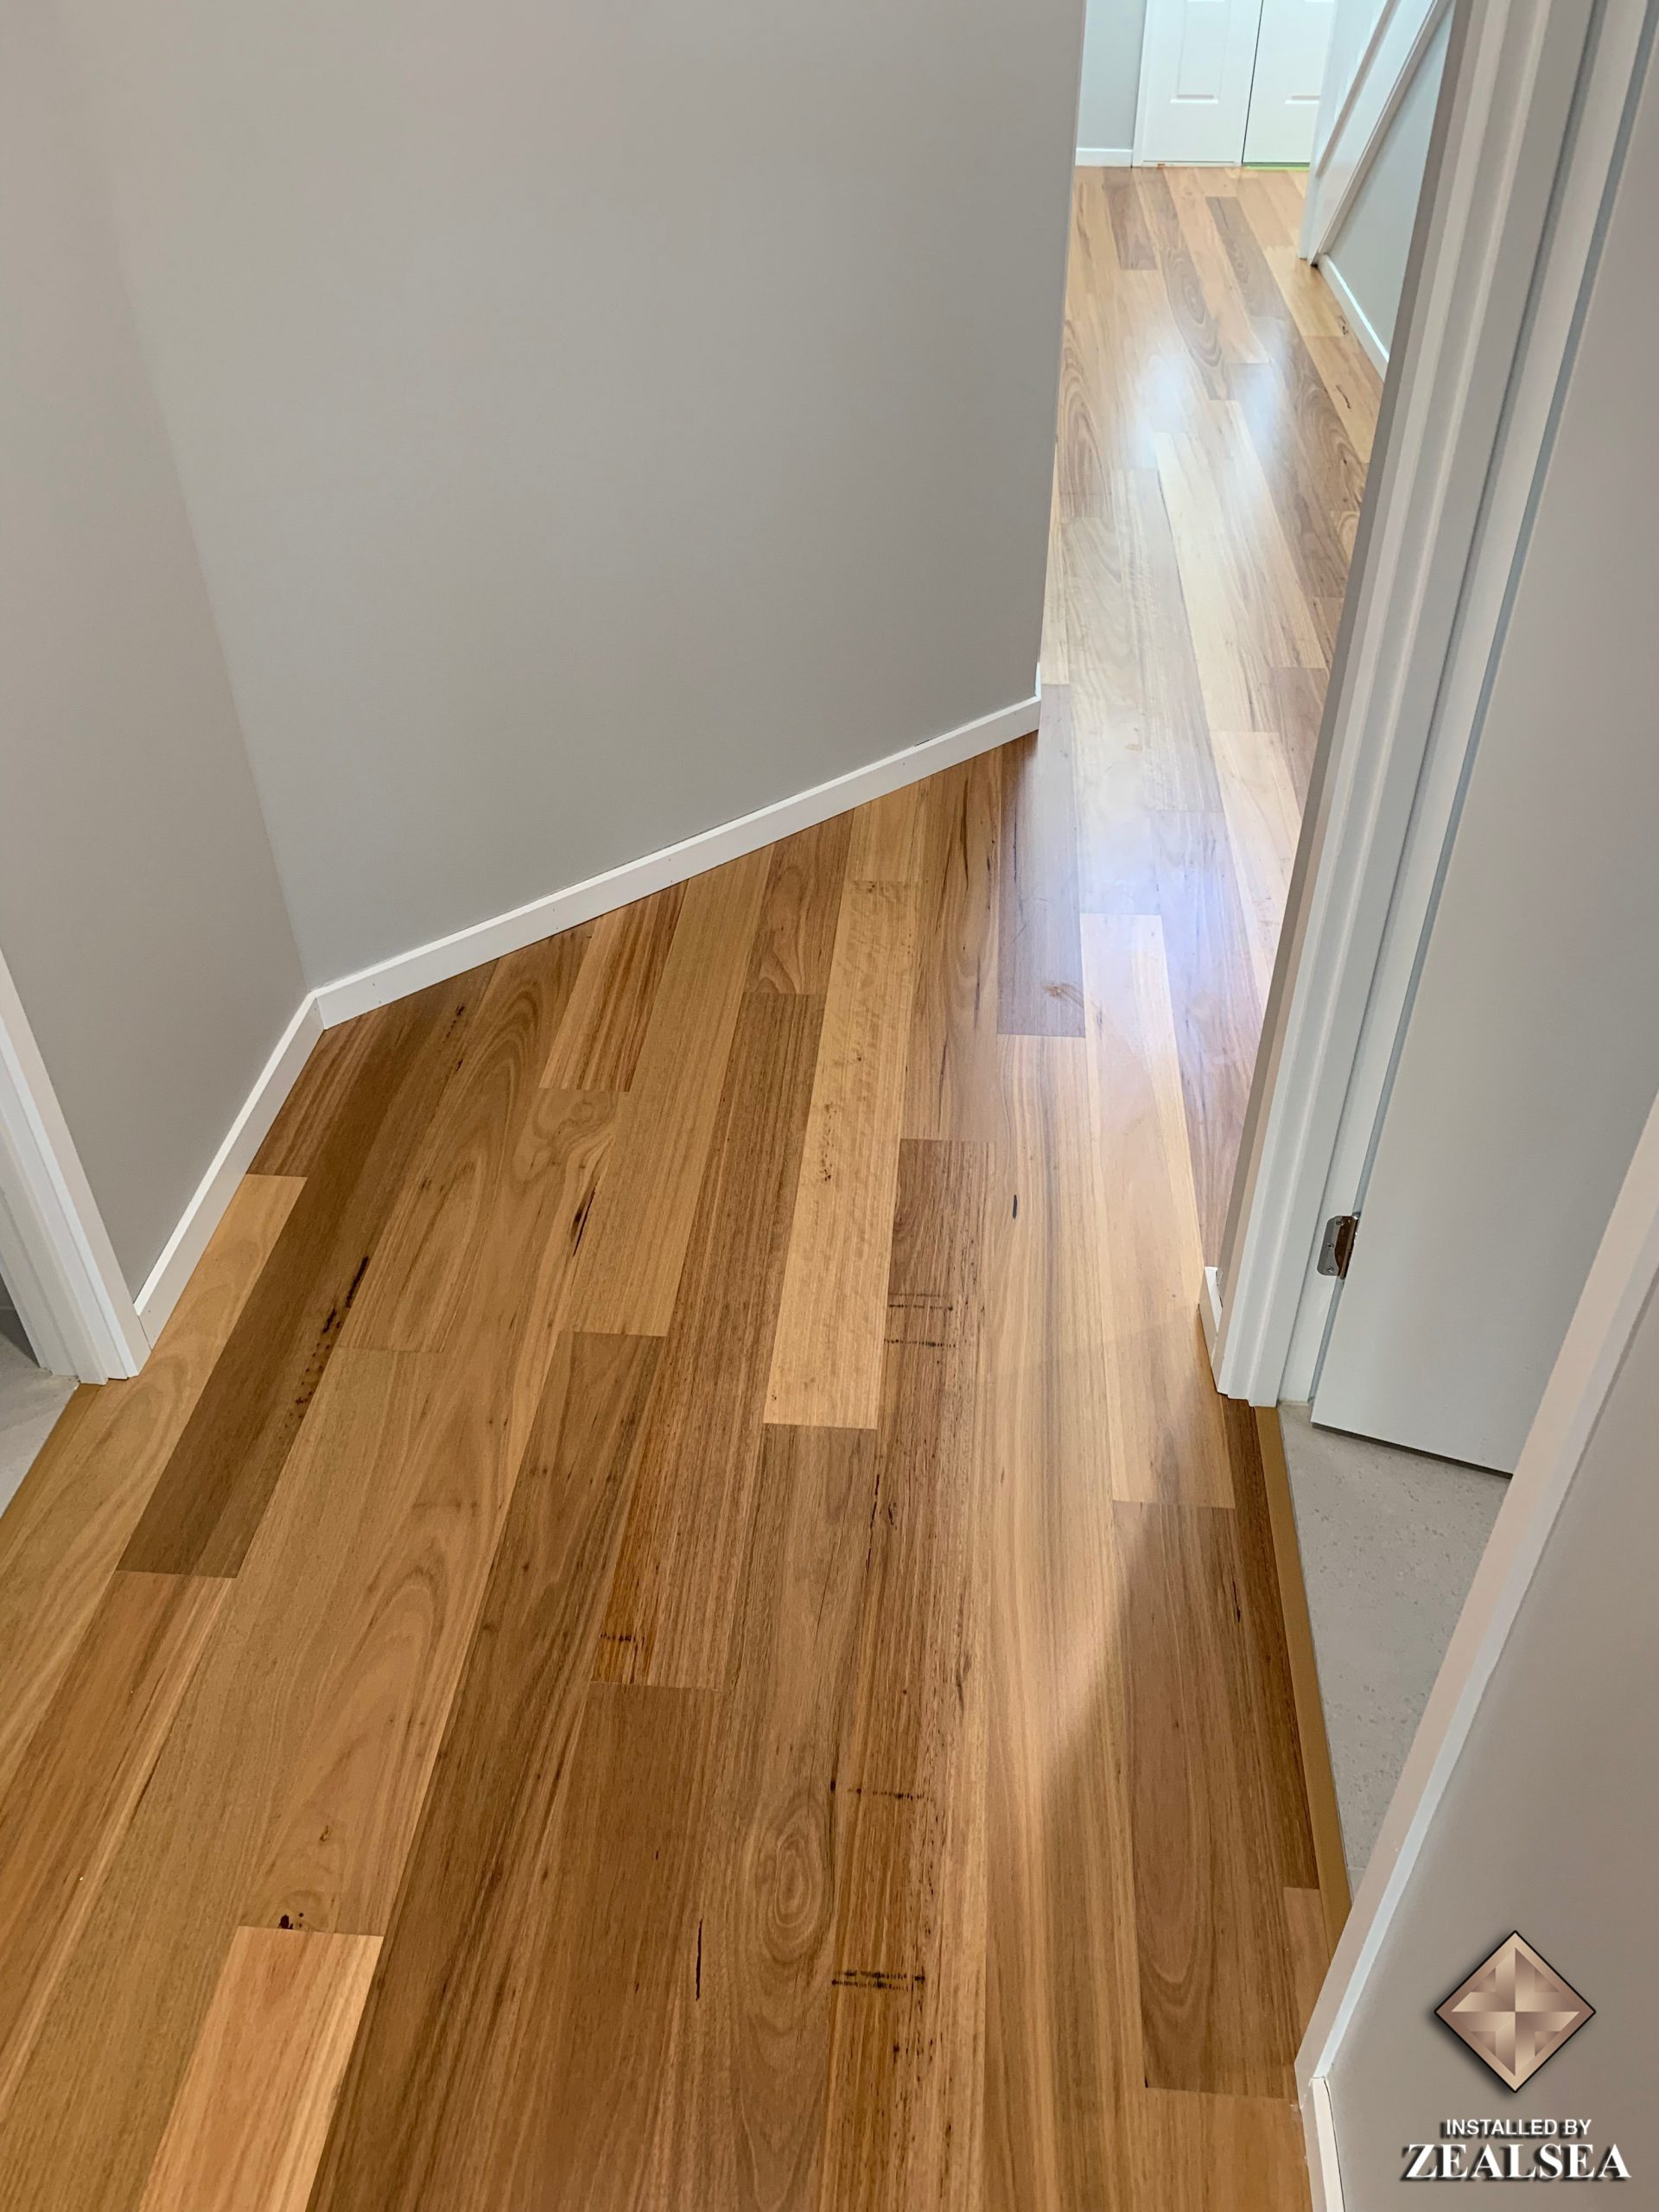 zealsea timber flooring professional installation oxley boral blackbutt 2 scaled